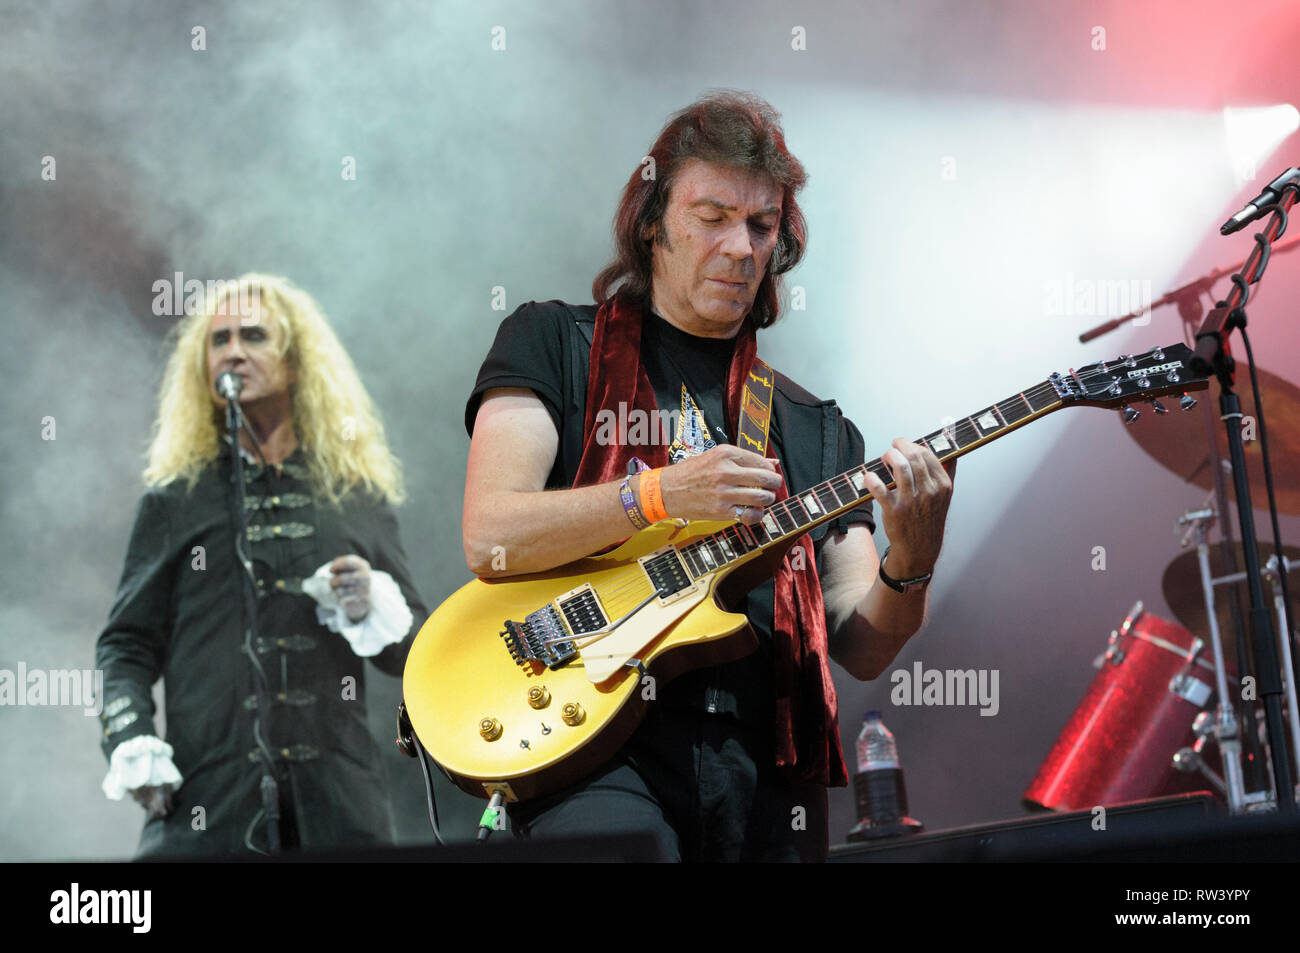 Steve Hackett and Nad Sylvan performing at the Cropredy Festival, August 7, 2014 - Stock Image